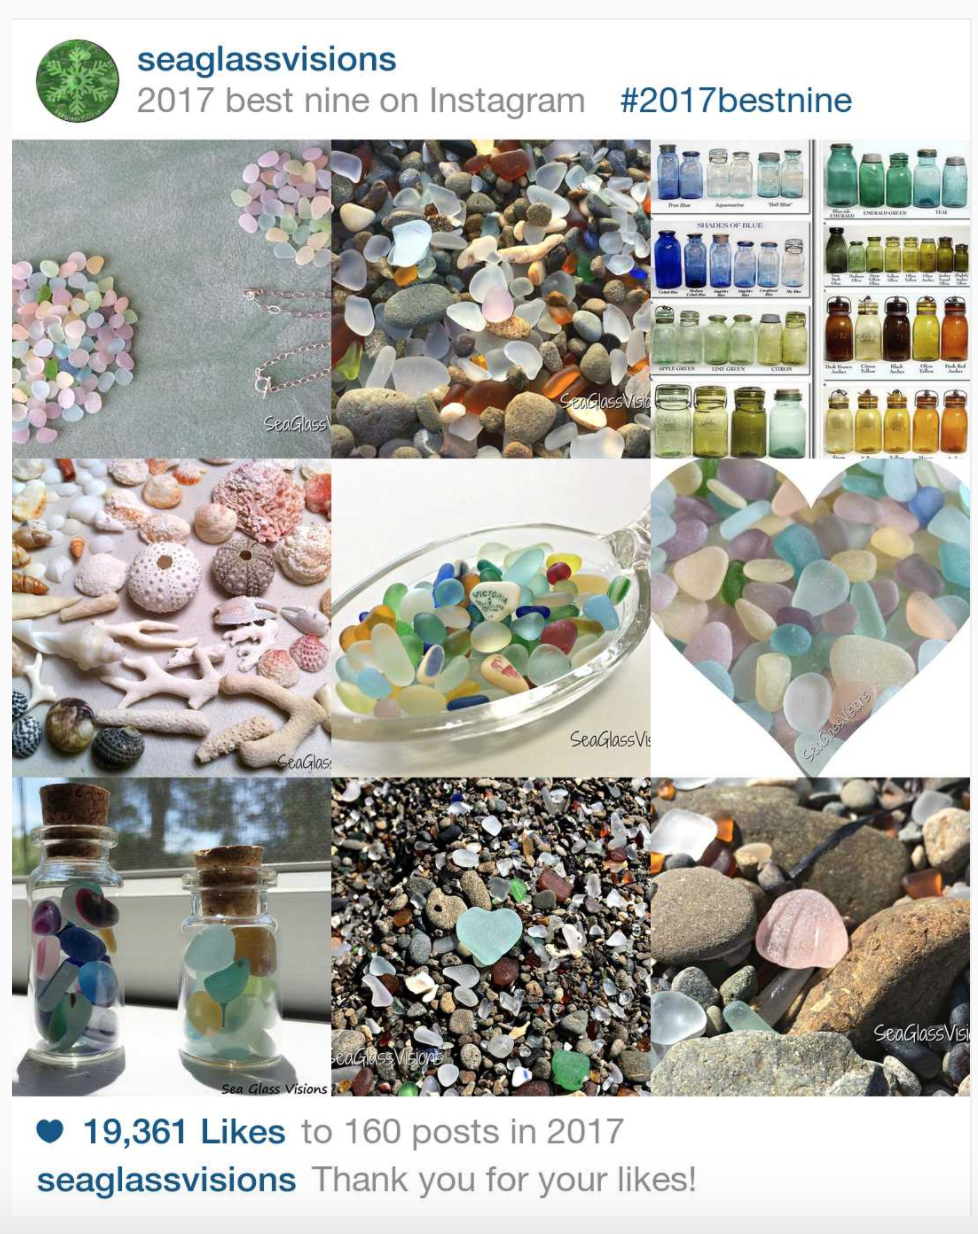 2017 Best Nine on Instagram for Sea Glass Visions